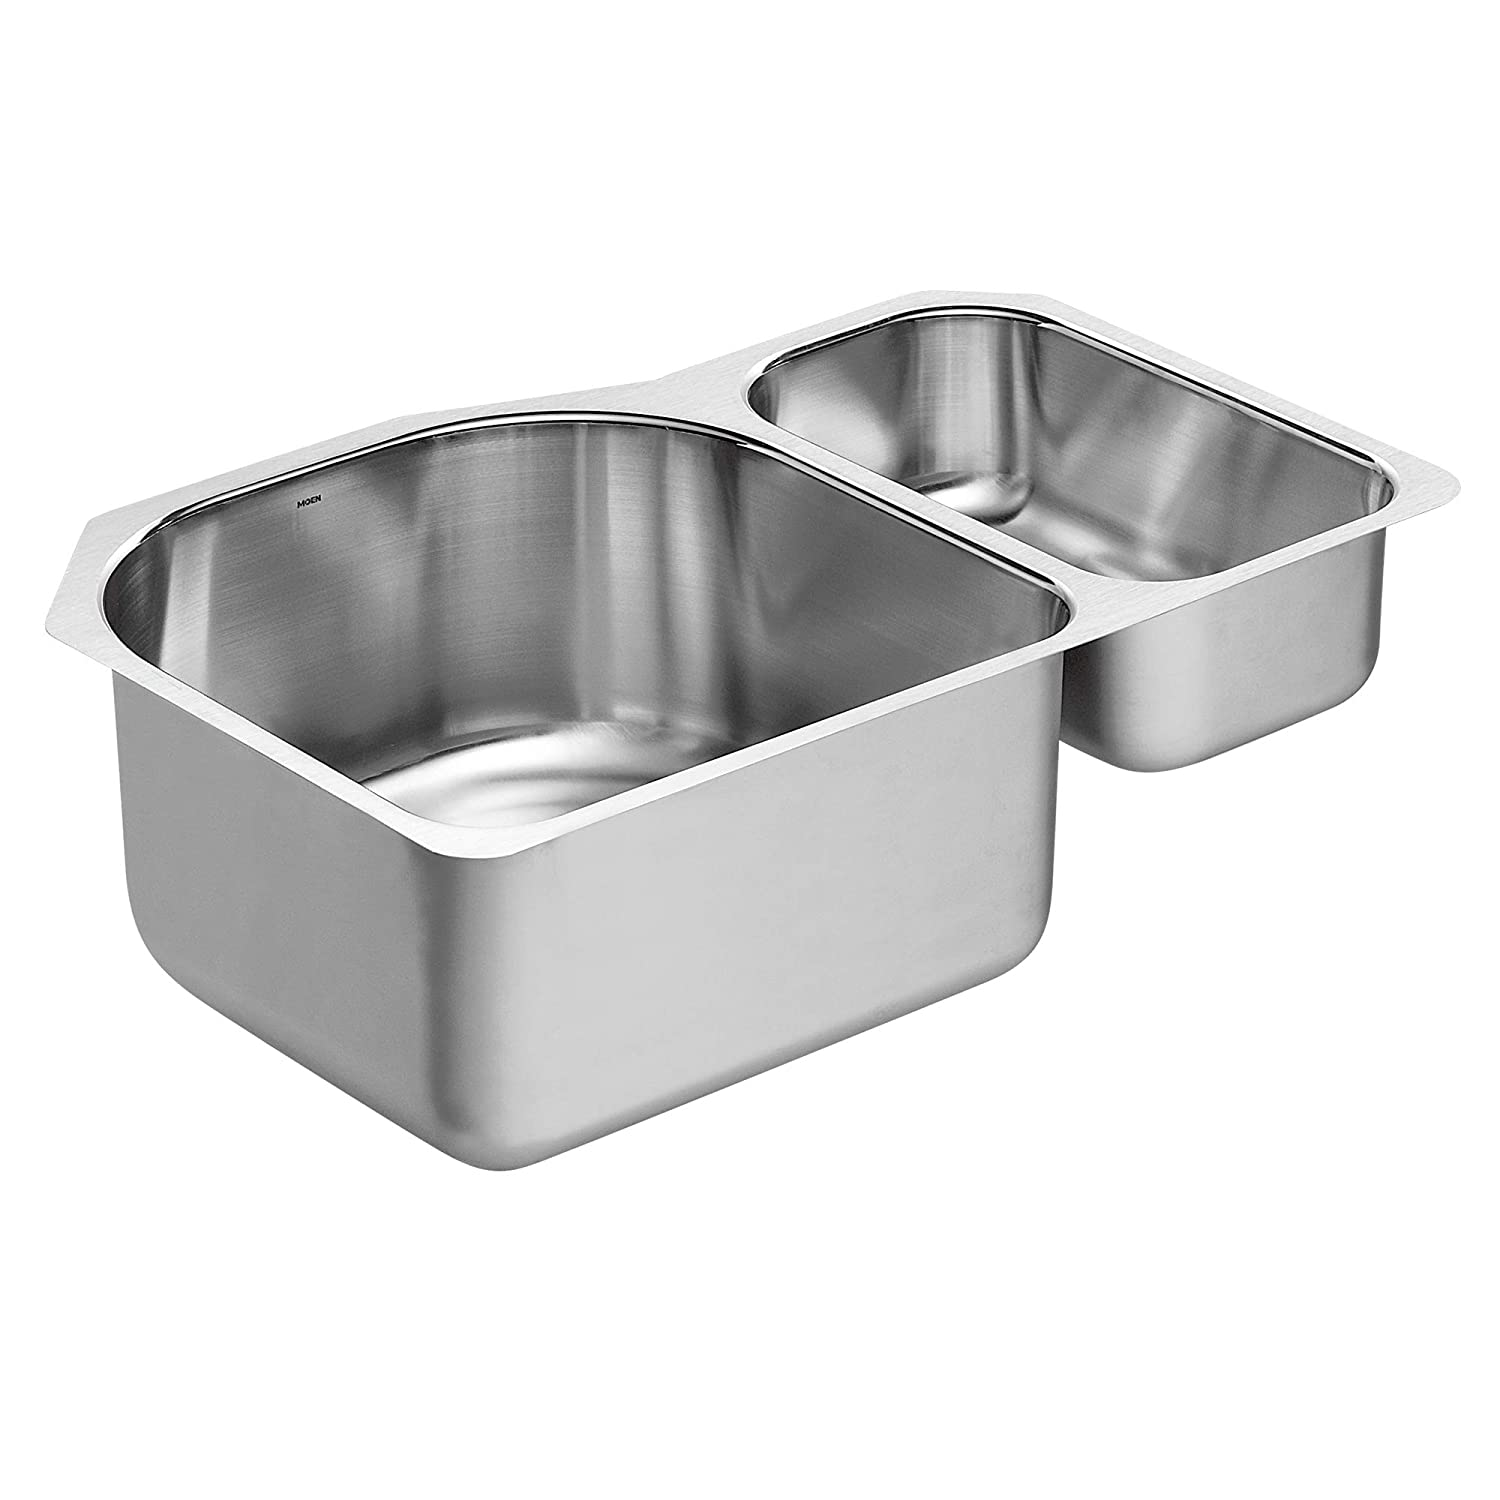 Moen G18273 1800 Series 18 Gauge Double Bowl Undermount Sink, Stainless Steel